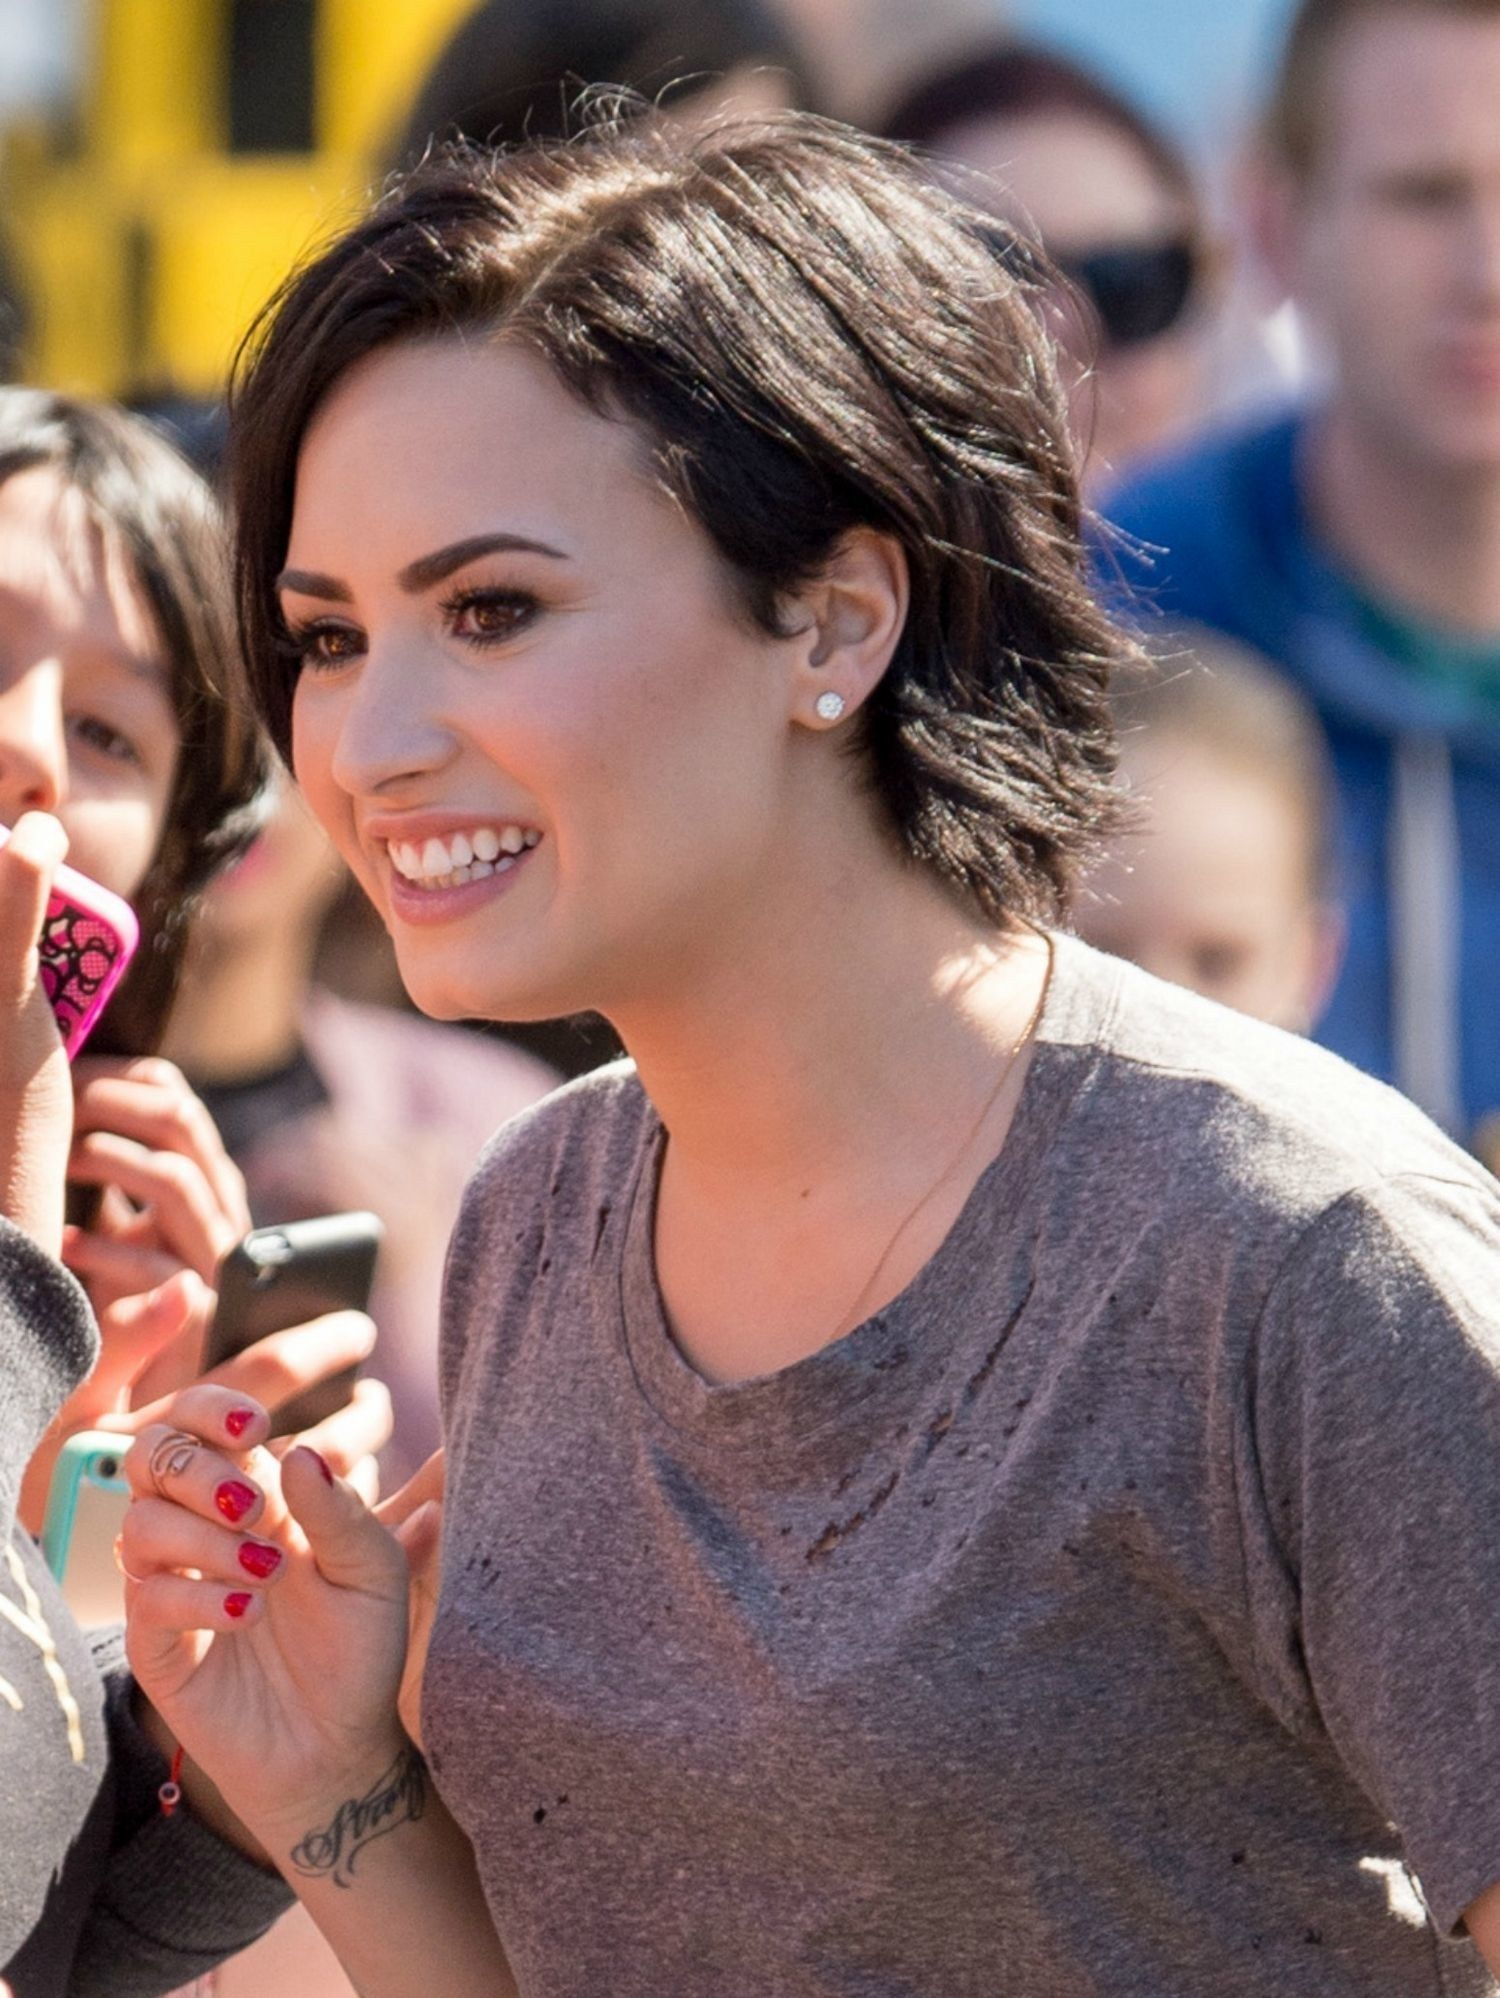 Demi lovatous haircut is crazy cutetake a look from every angle